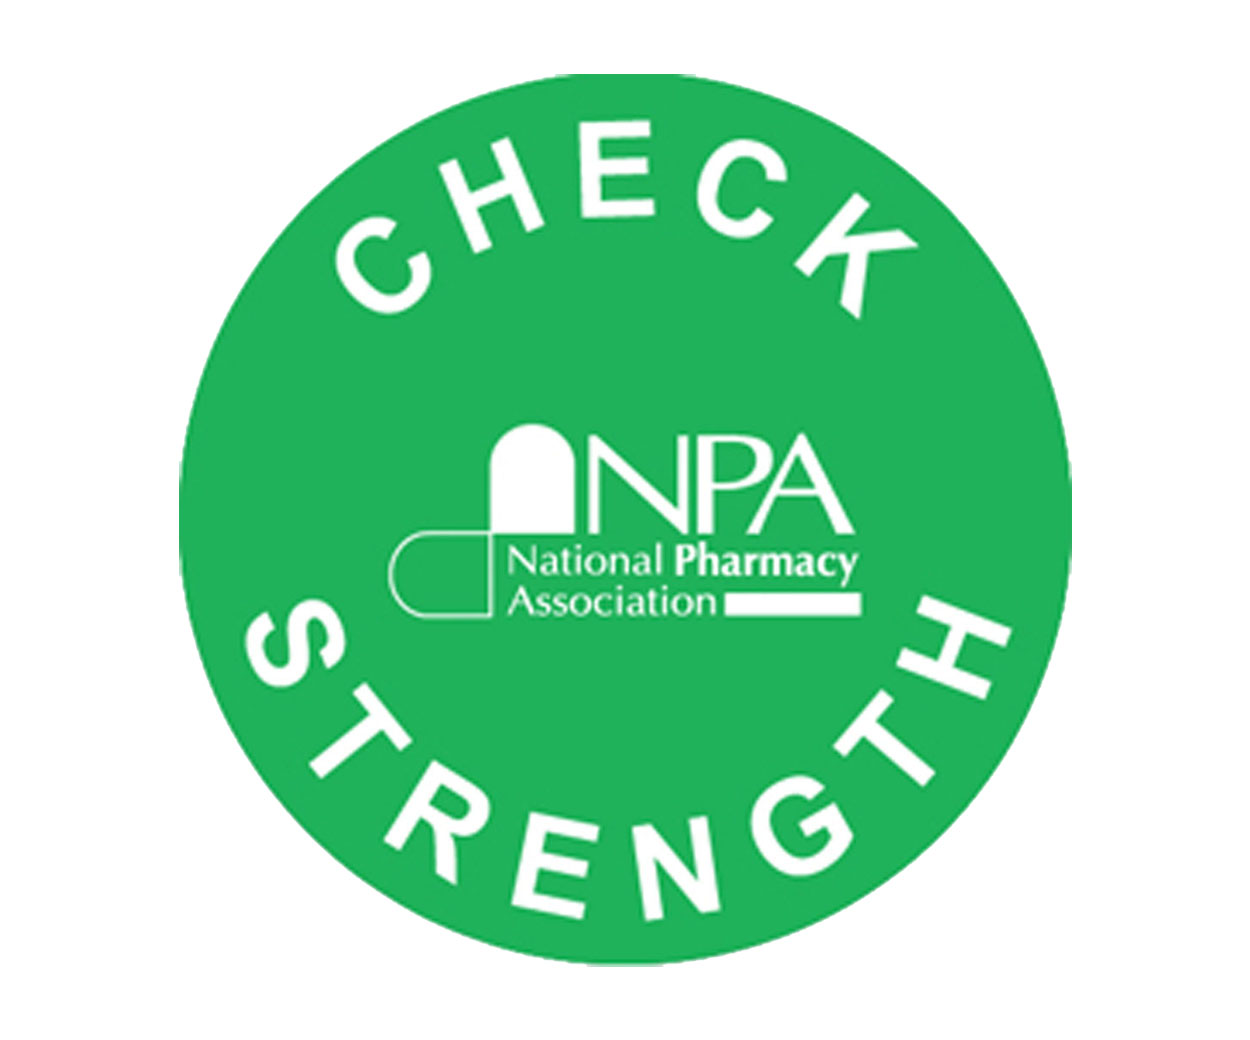 Check Strength Prescription Alert Sticker - Pack of 1000